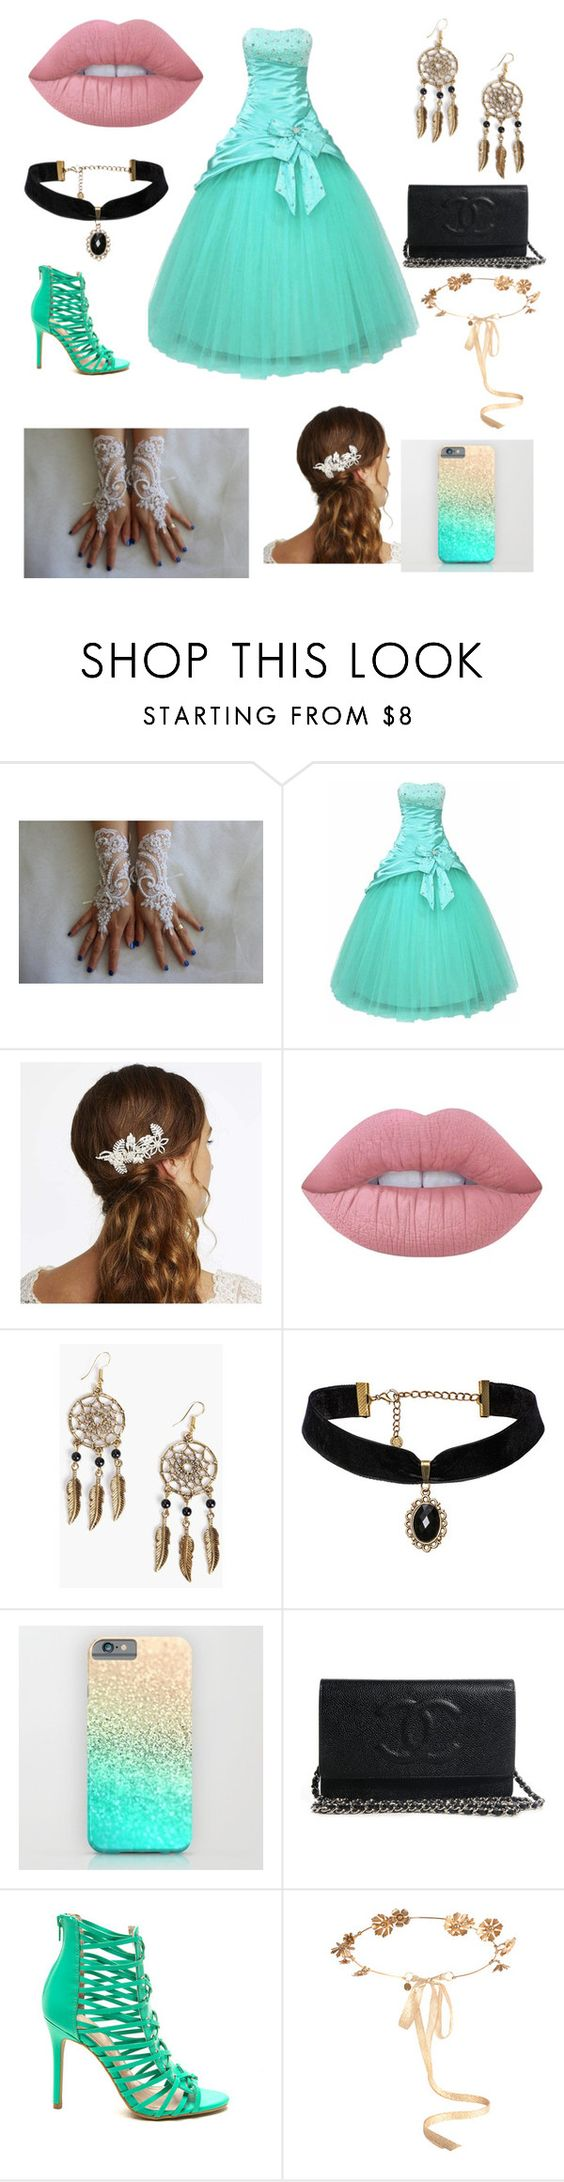 """""""Party Time #2"""" by jessiesme ❤ liked on Polyvore featuring Alan Hannah, Lime Crime, Boohoo and Eugenia Kim"""